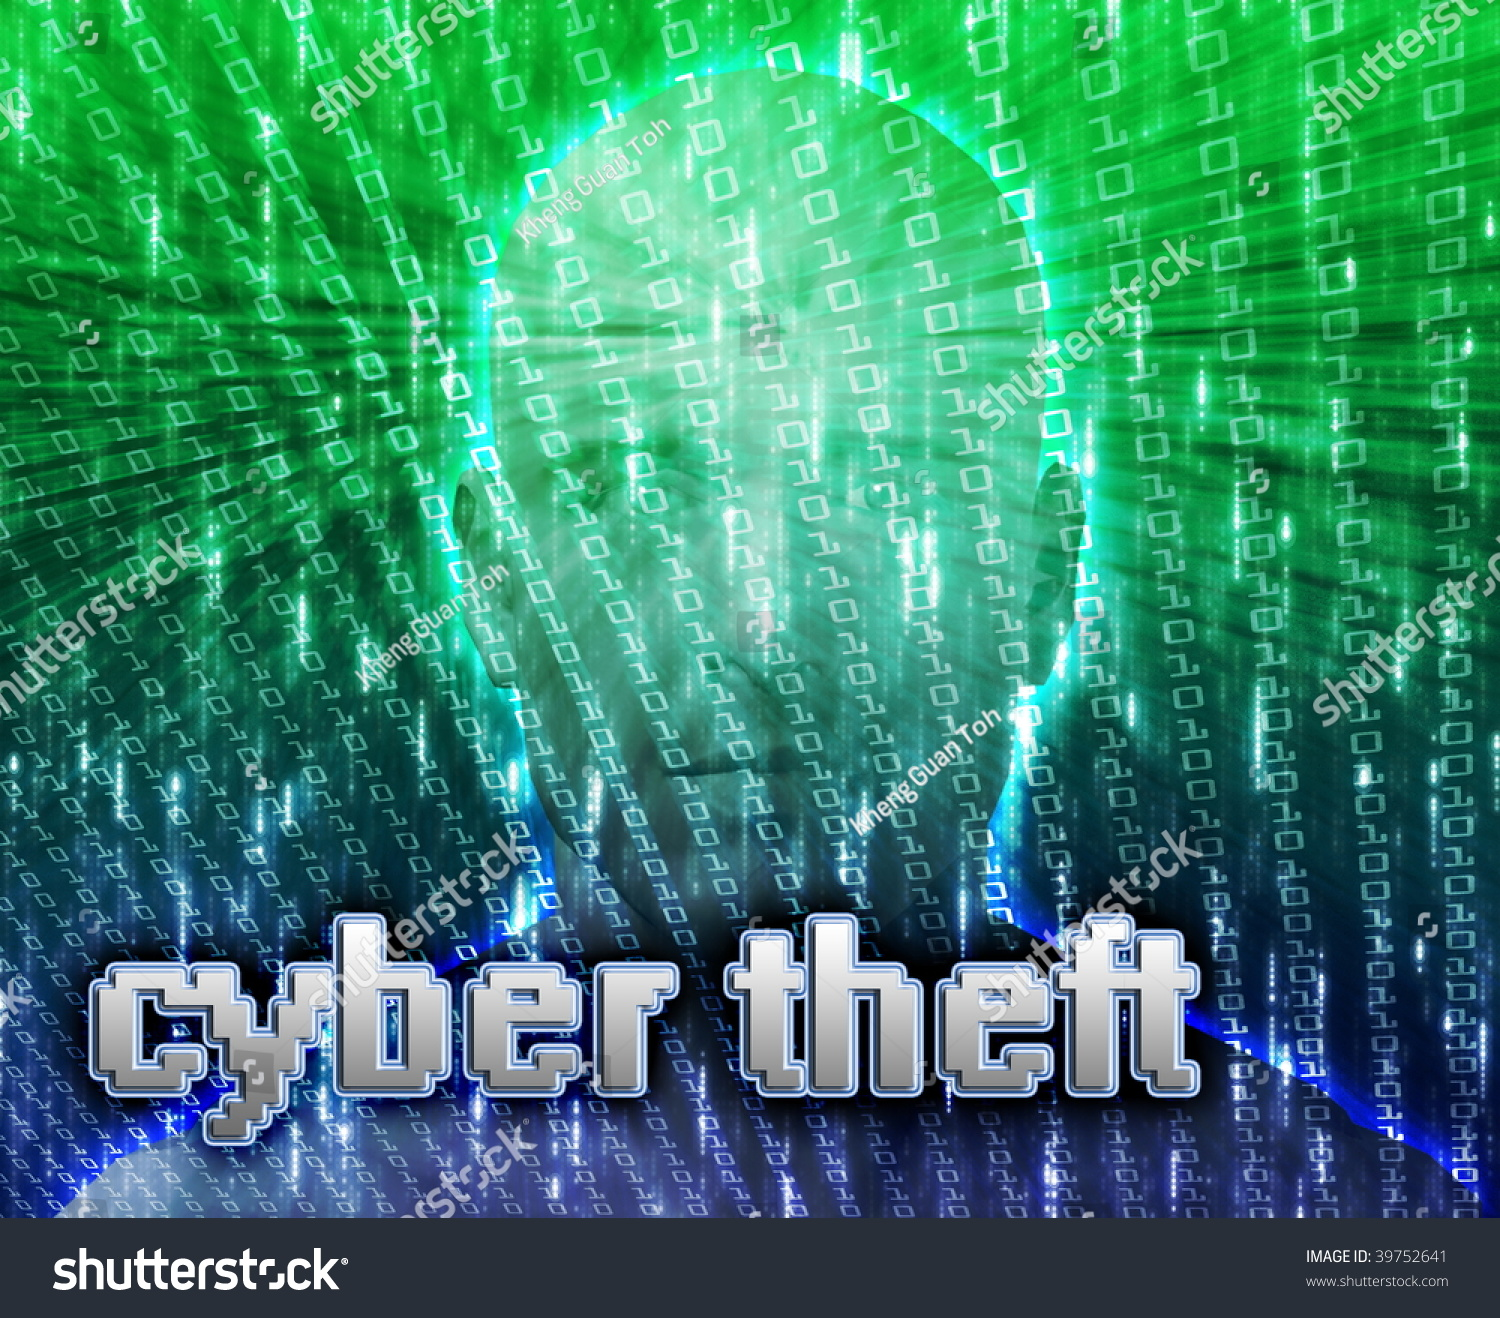 online fraud and identity theft Fraud & identity theft center  ncua operates an online fraud prevention center that offers information about avoiding frauds and scams on its mycredituniongov .